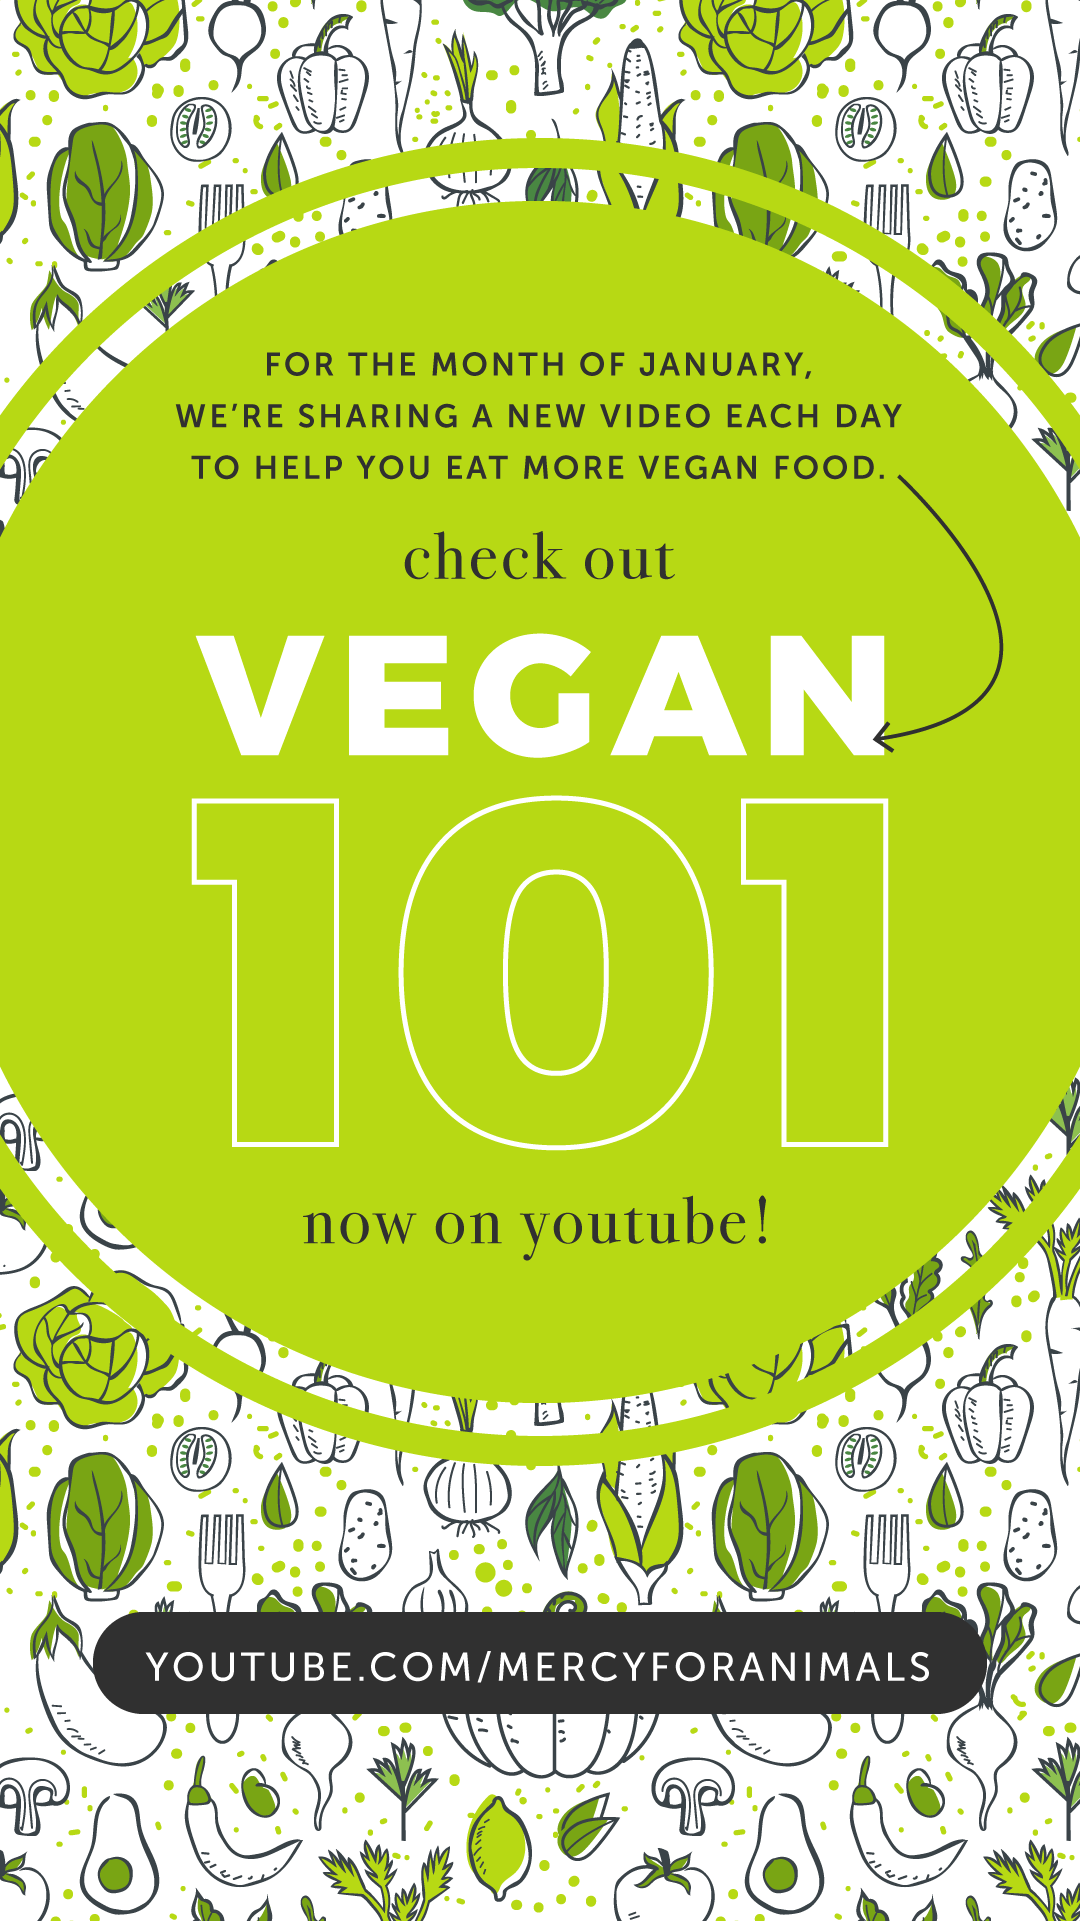 New To Vegan Eating Check Out Our Vegan 101 Series On